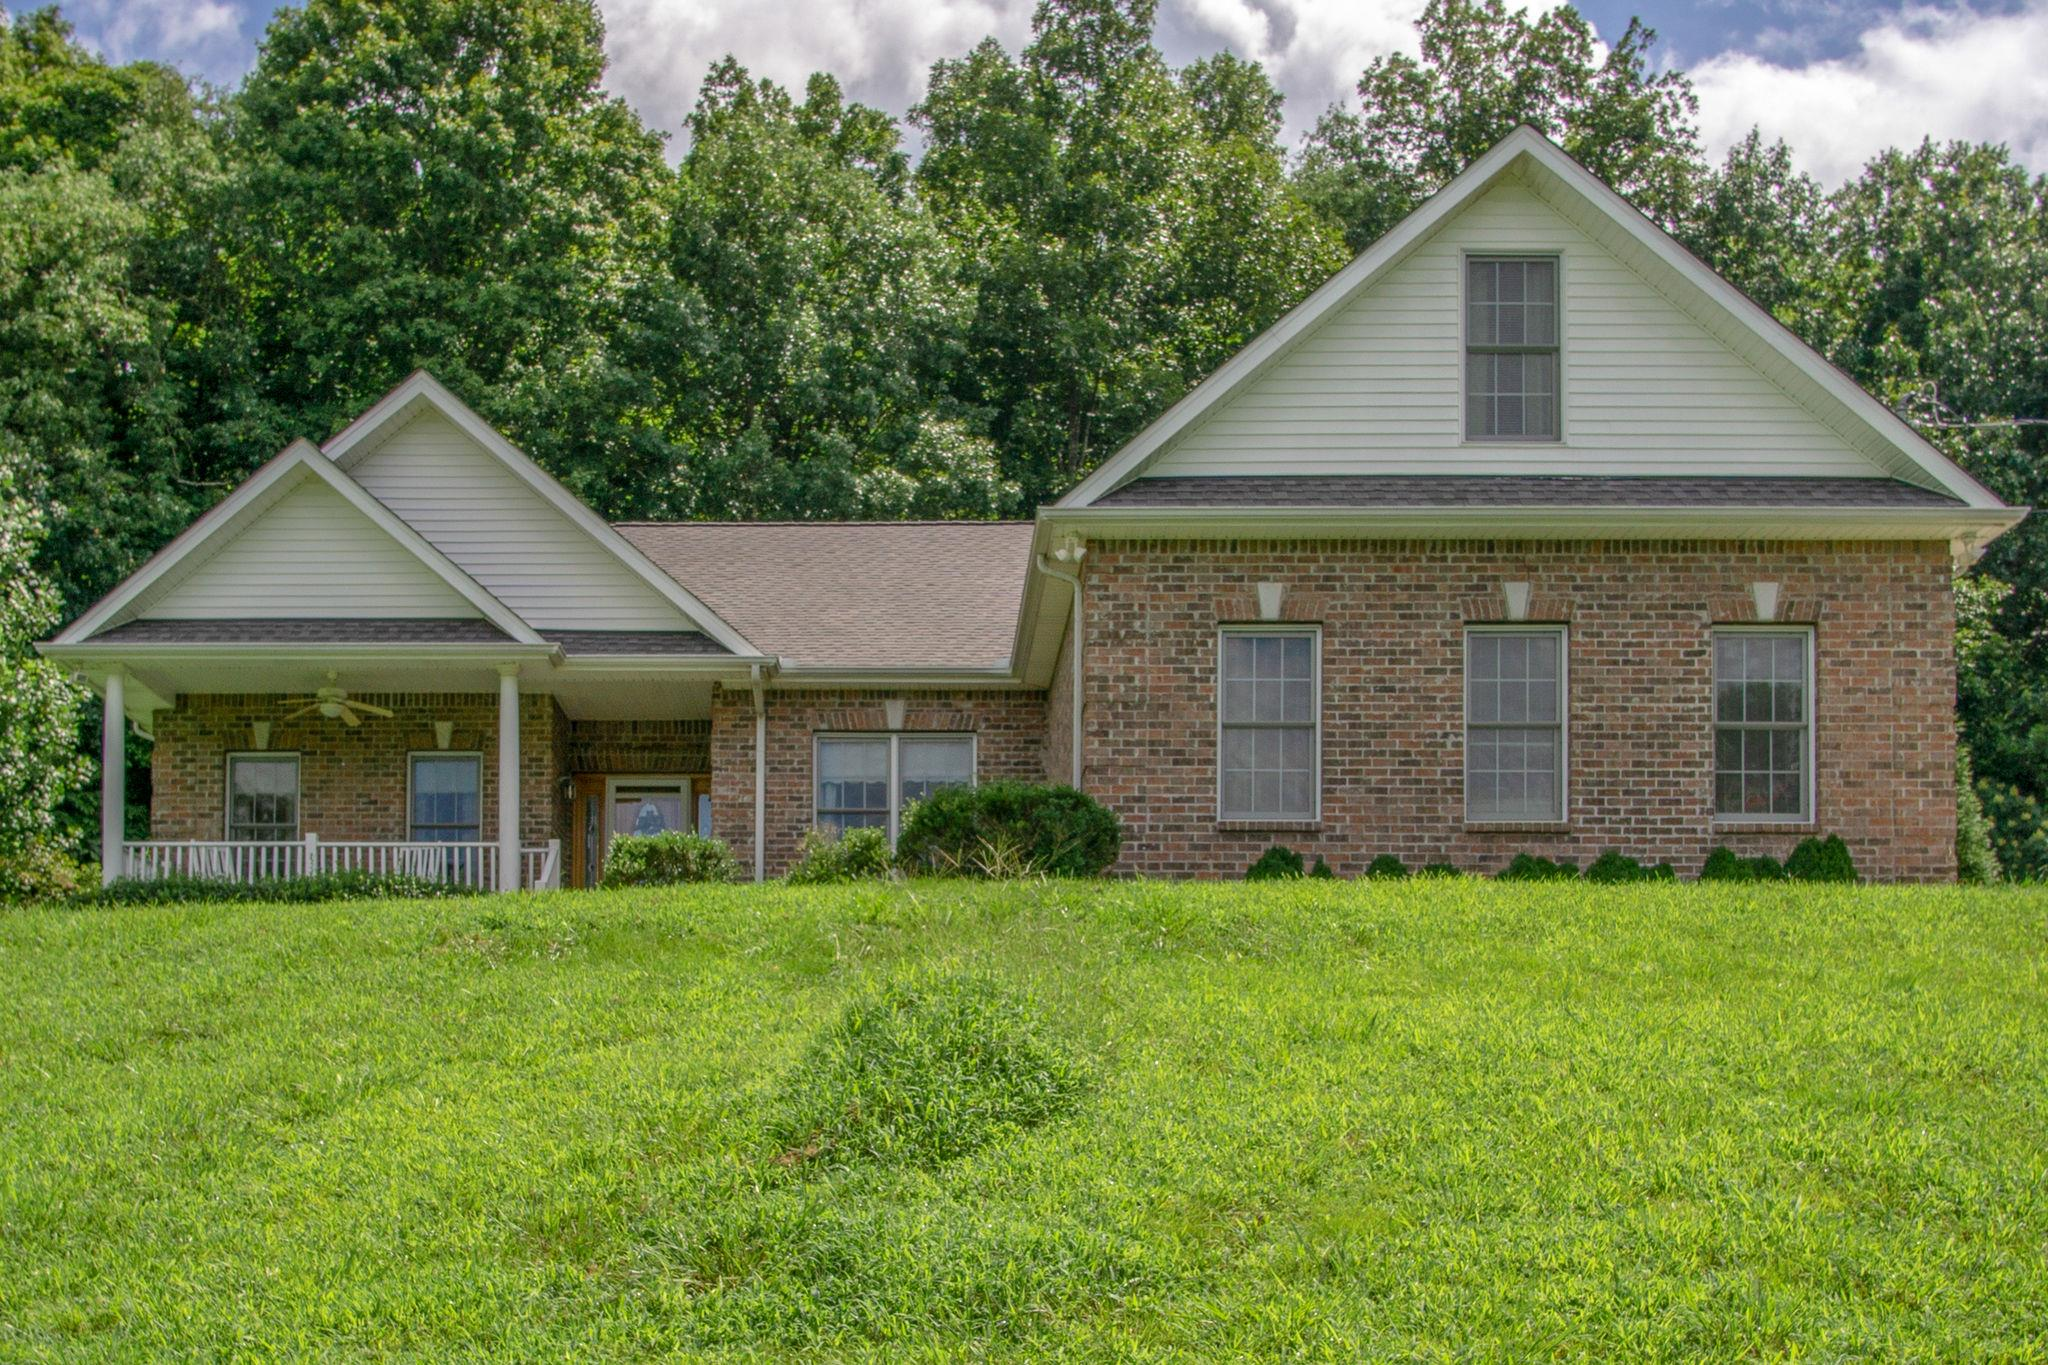 4018 Williamsport Pike, Williamsport, TN 38487 - Williamsport, TN real estate listing